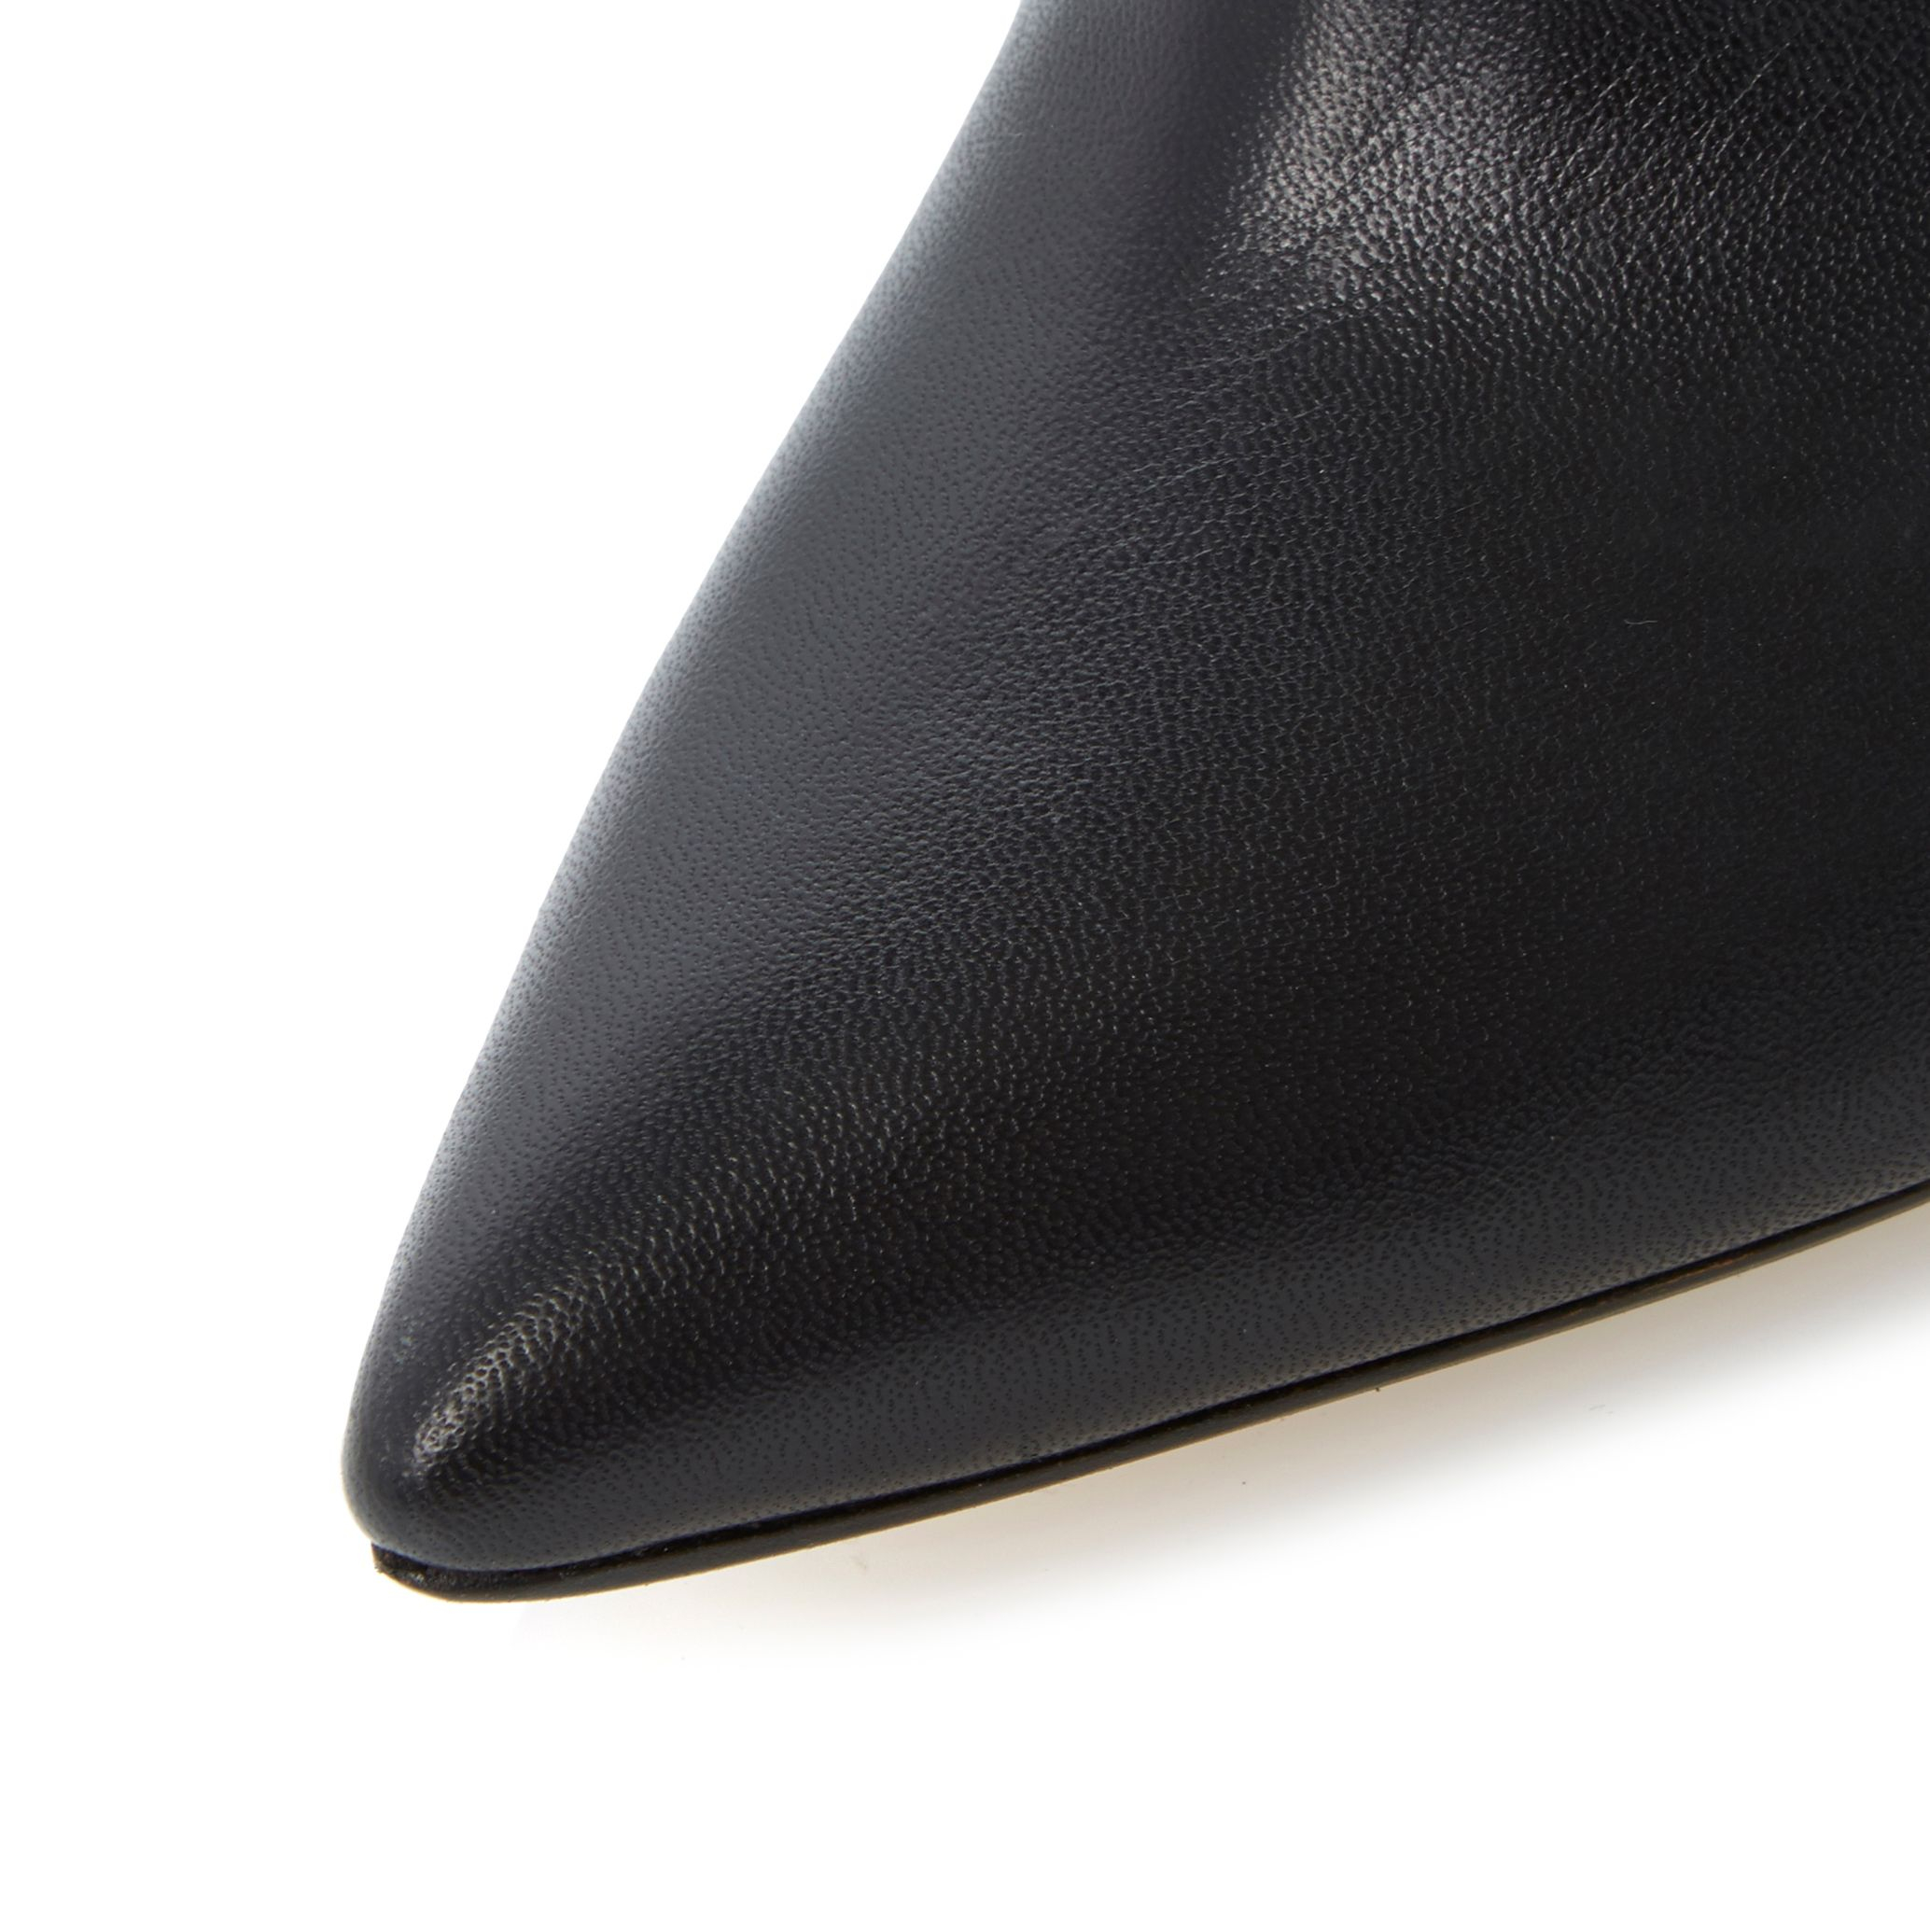 Dune Leather Chrissie Open Back Shoe Boot in Black Leather (Black)